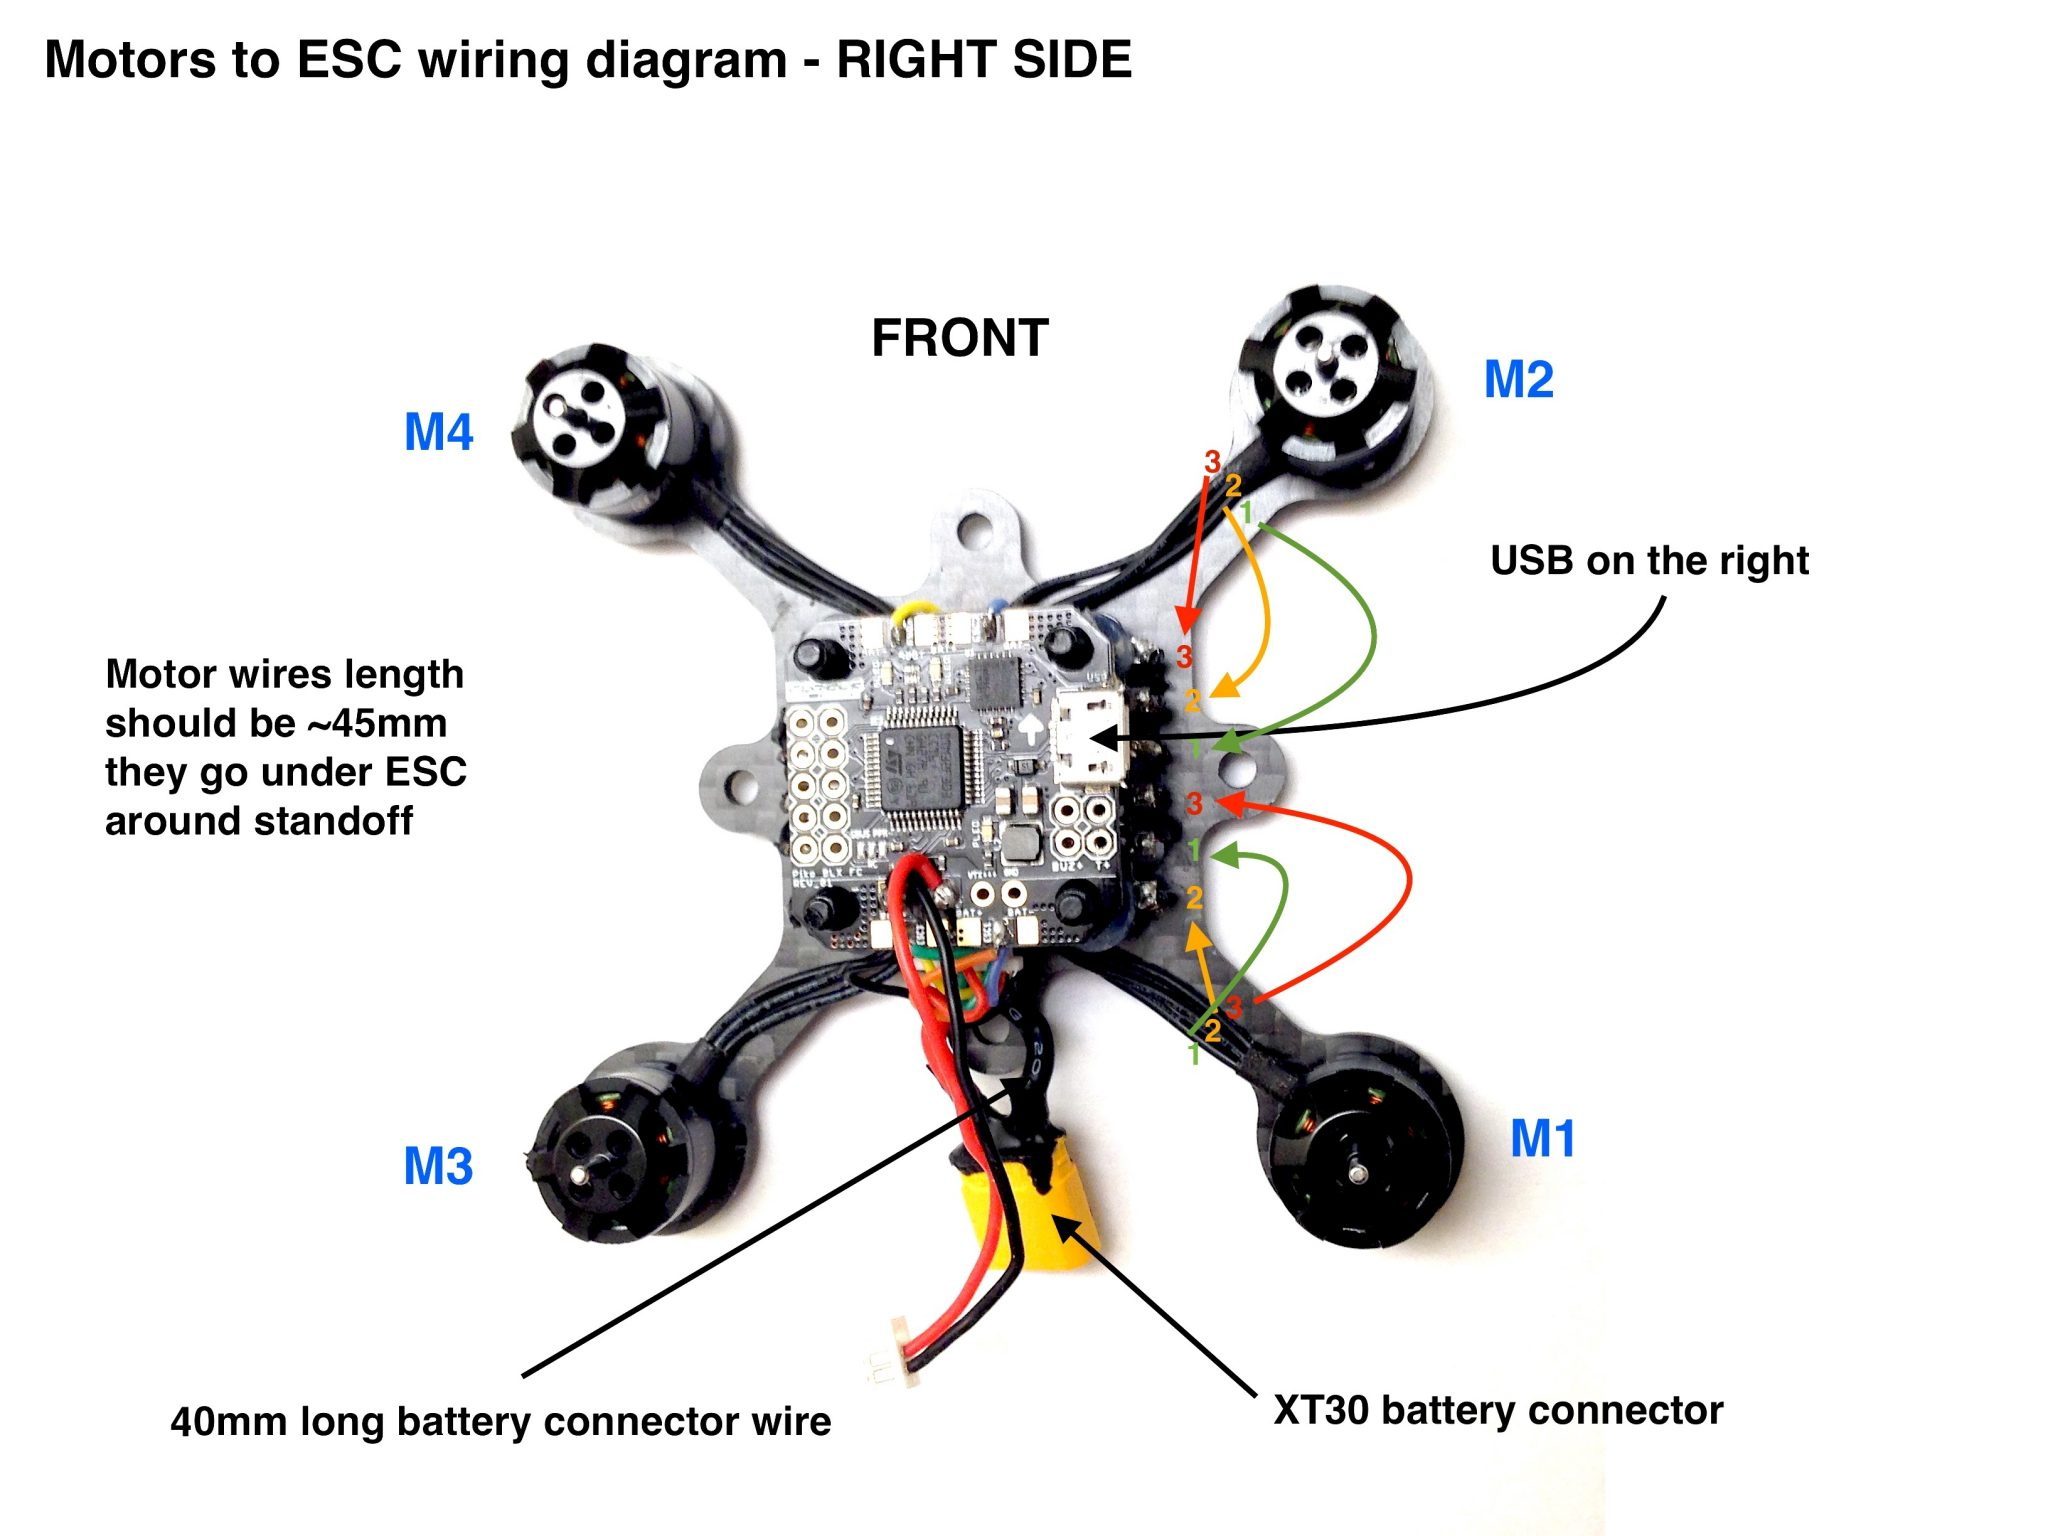 motor esc wiring diagram   24 wiring diagram images